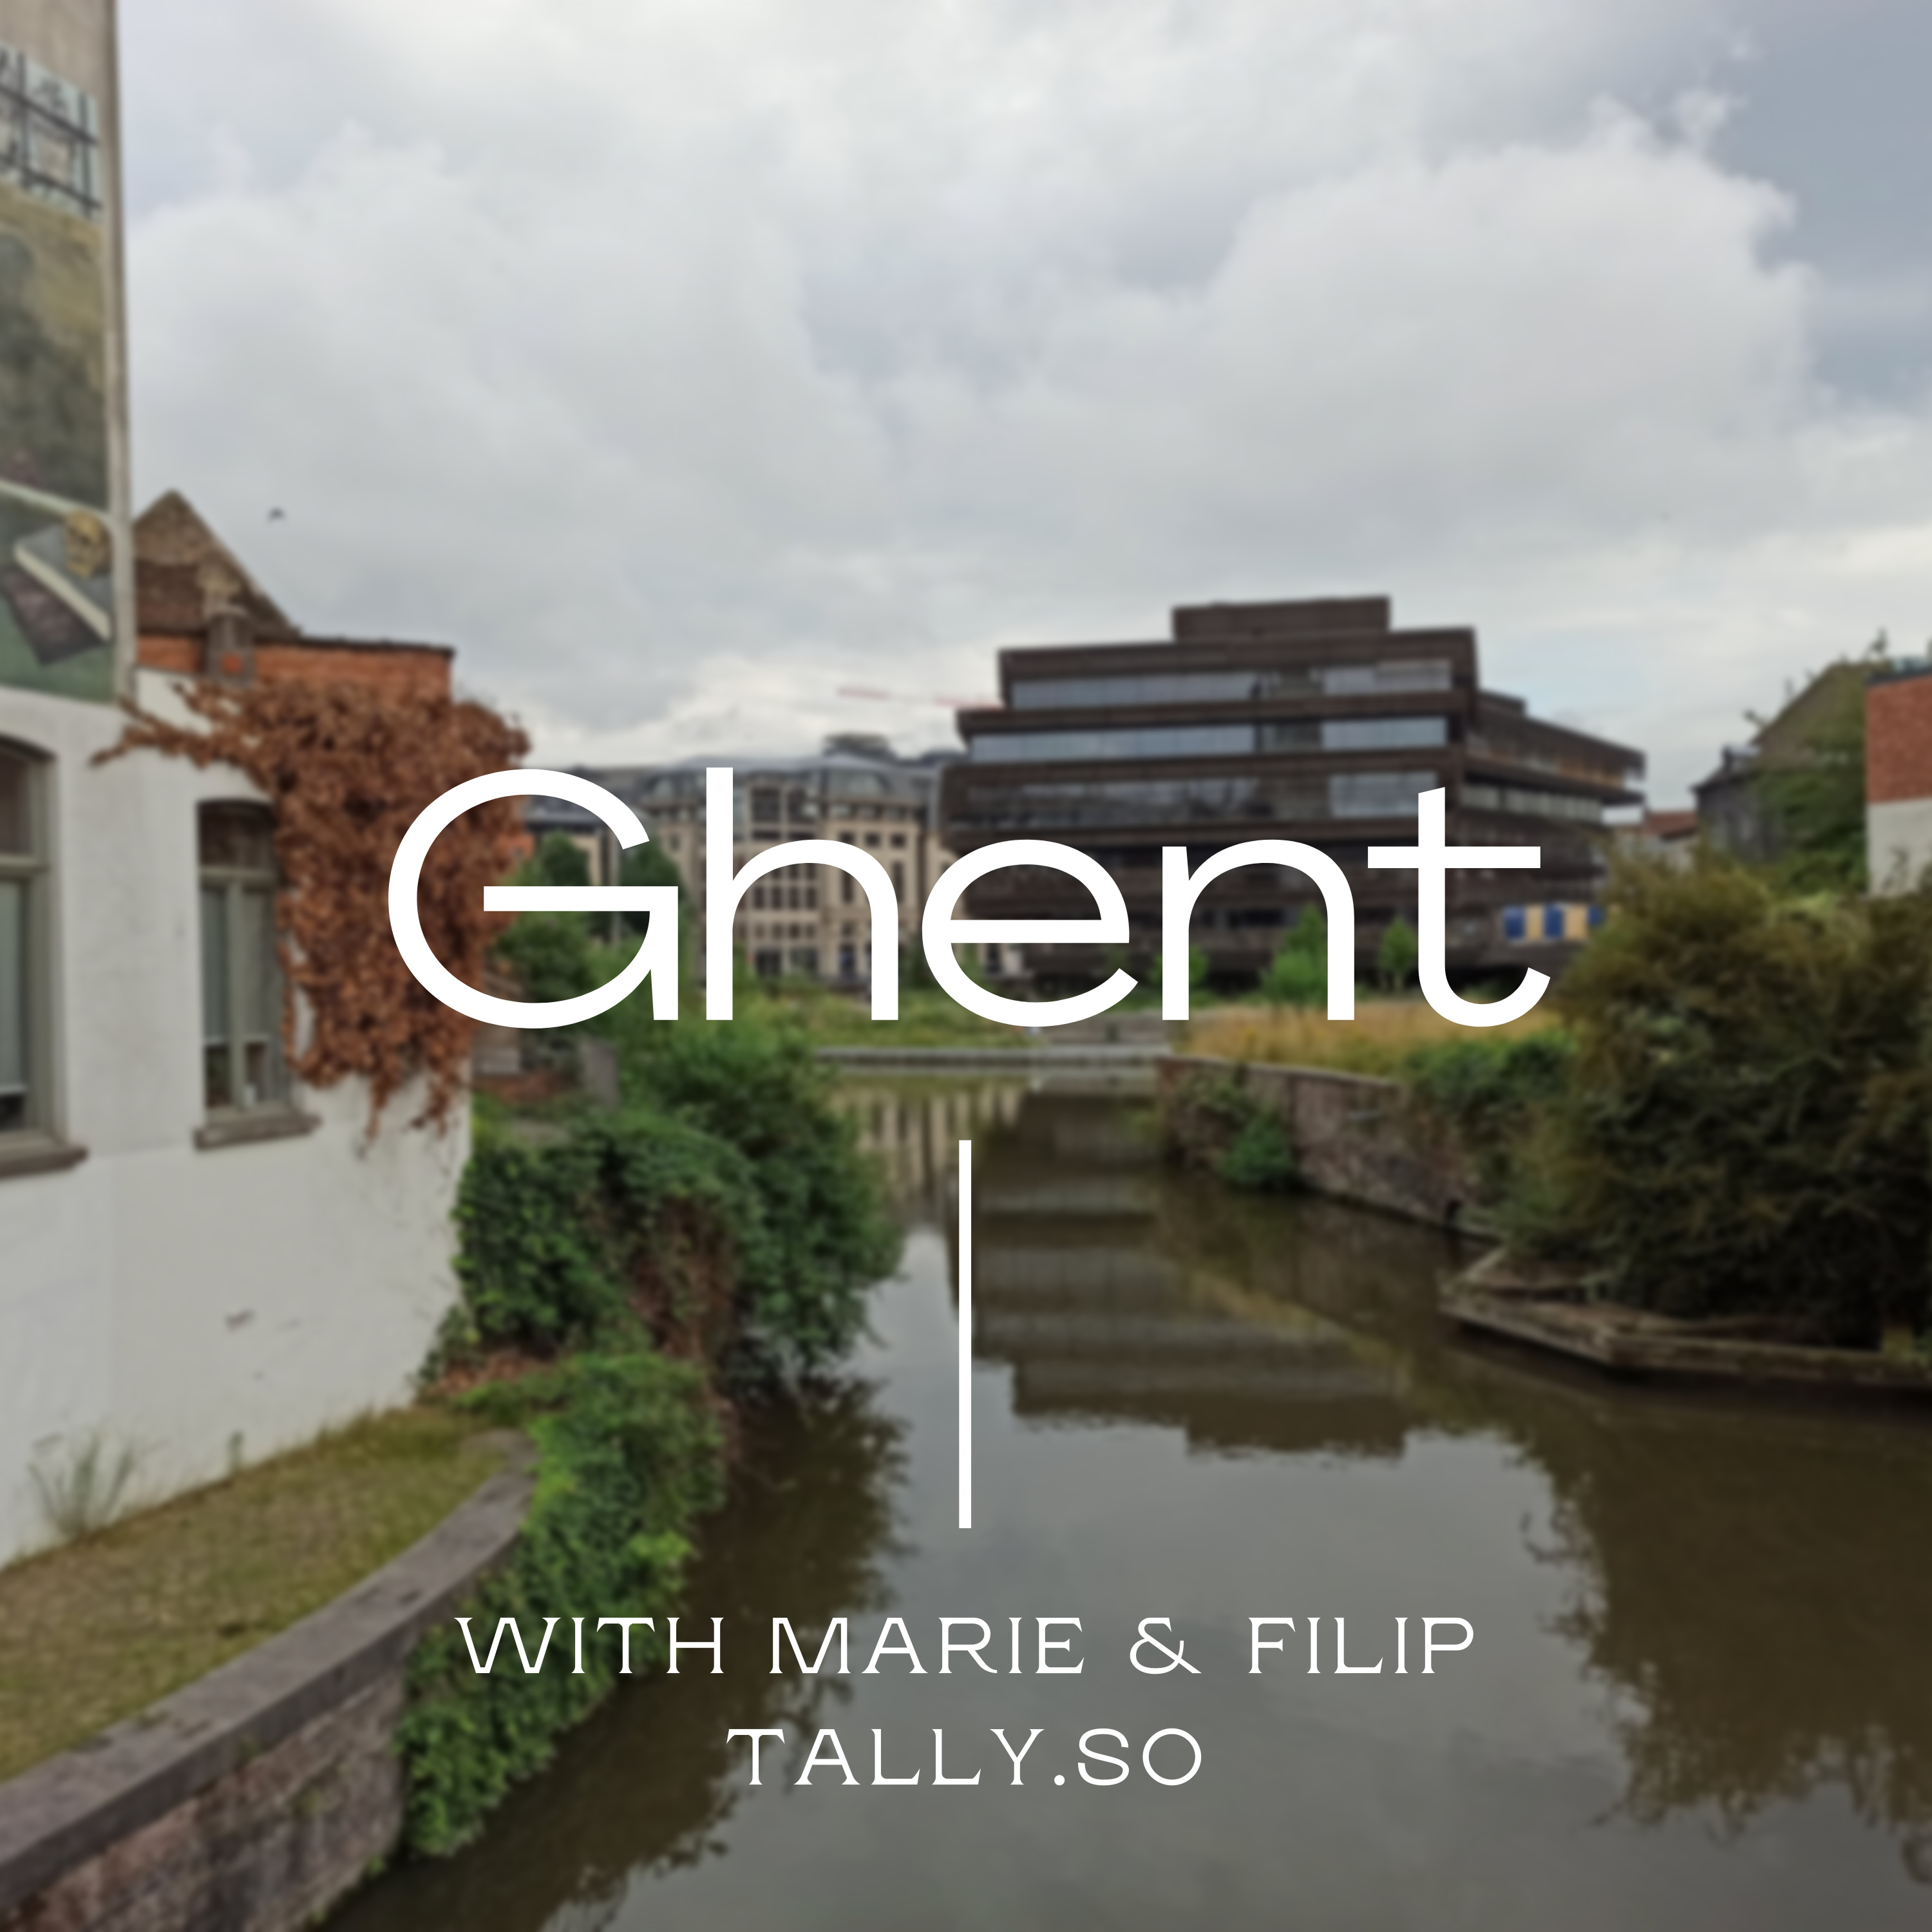 #1: In Ghent, Marie and Filip tell me everything about tally.so